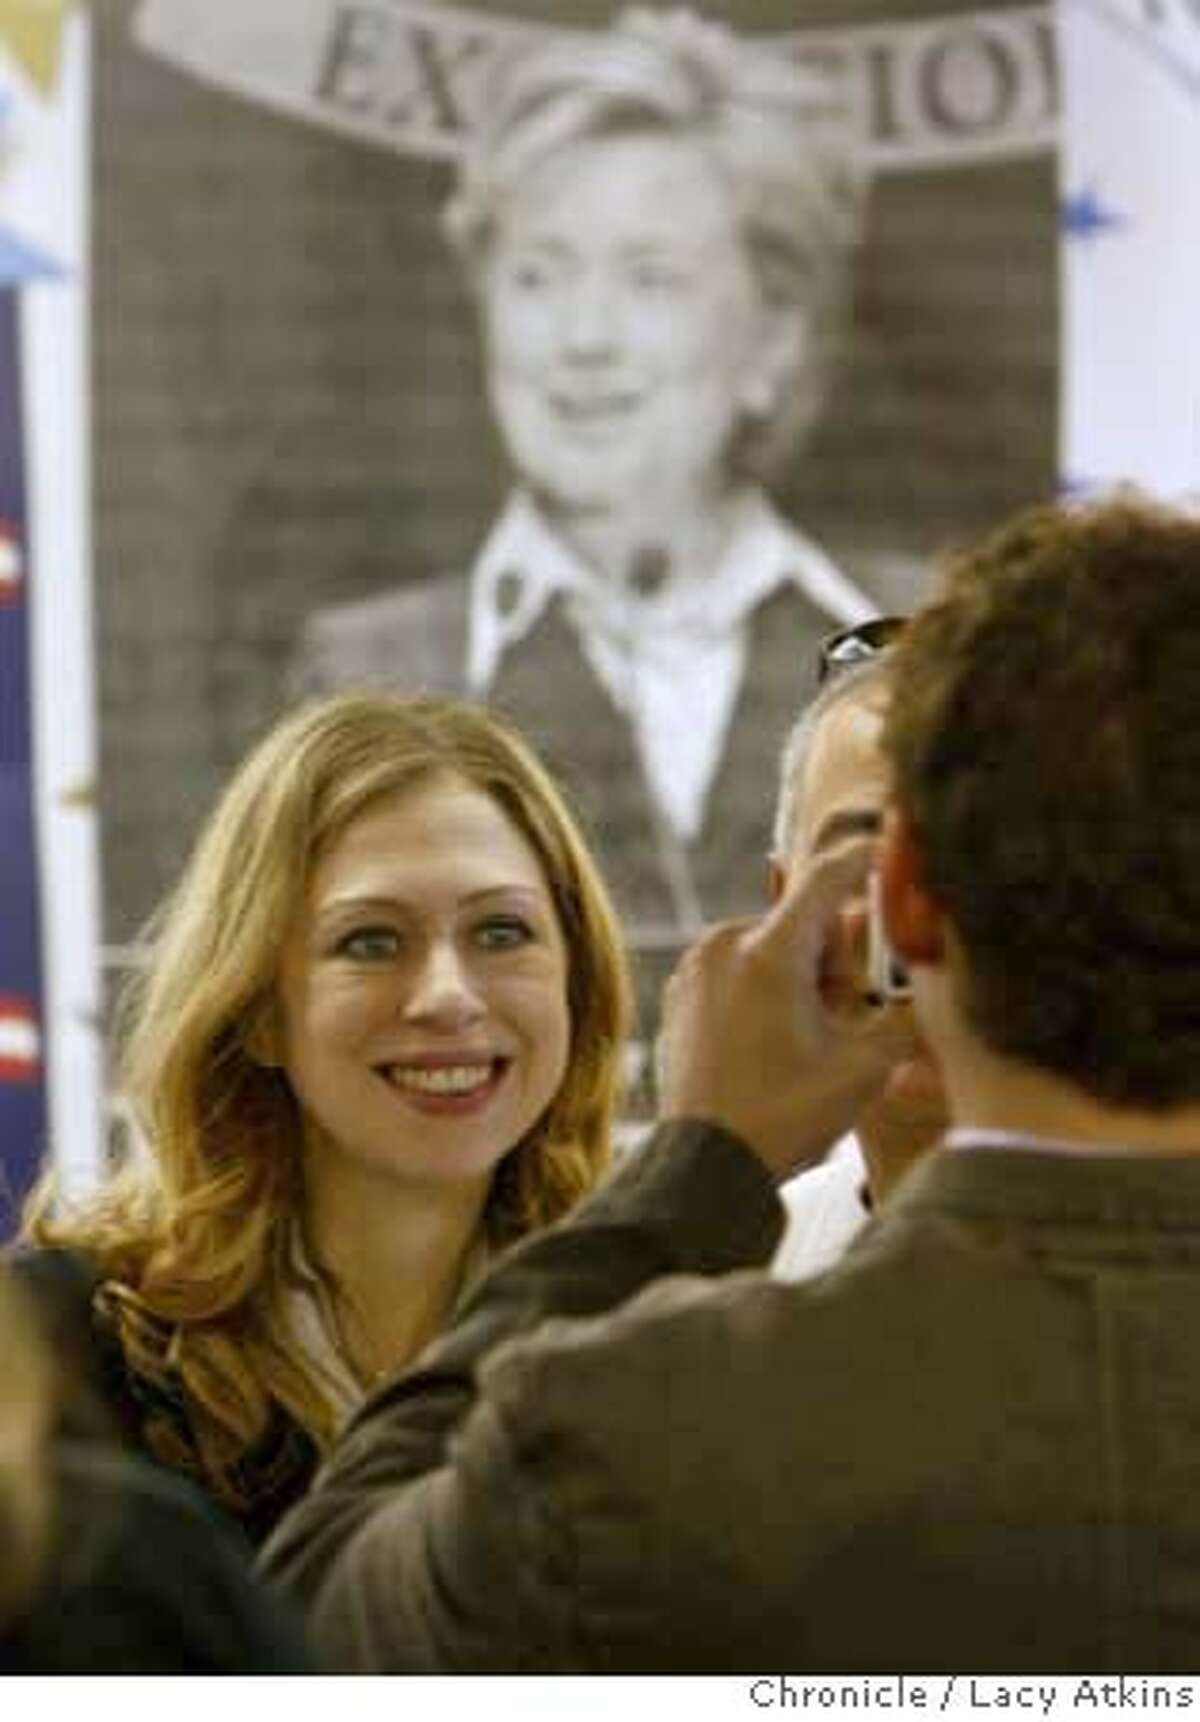 Chelsea Clinton gets her picture made at the Hillary Clinton campaign headquarters, Sunday January 13, 2008, in San Francisco, CA. (Lacy Atkins San Francisco Chronicle) MANDATORY CREDIT FOR PHOTOG AND SAN FRANCISCO CHRONICLE/NO SALES-MAGS OUT